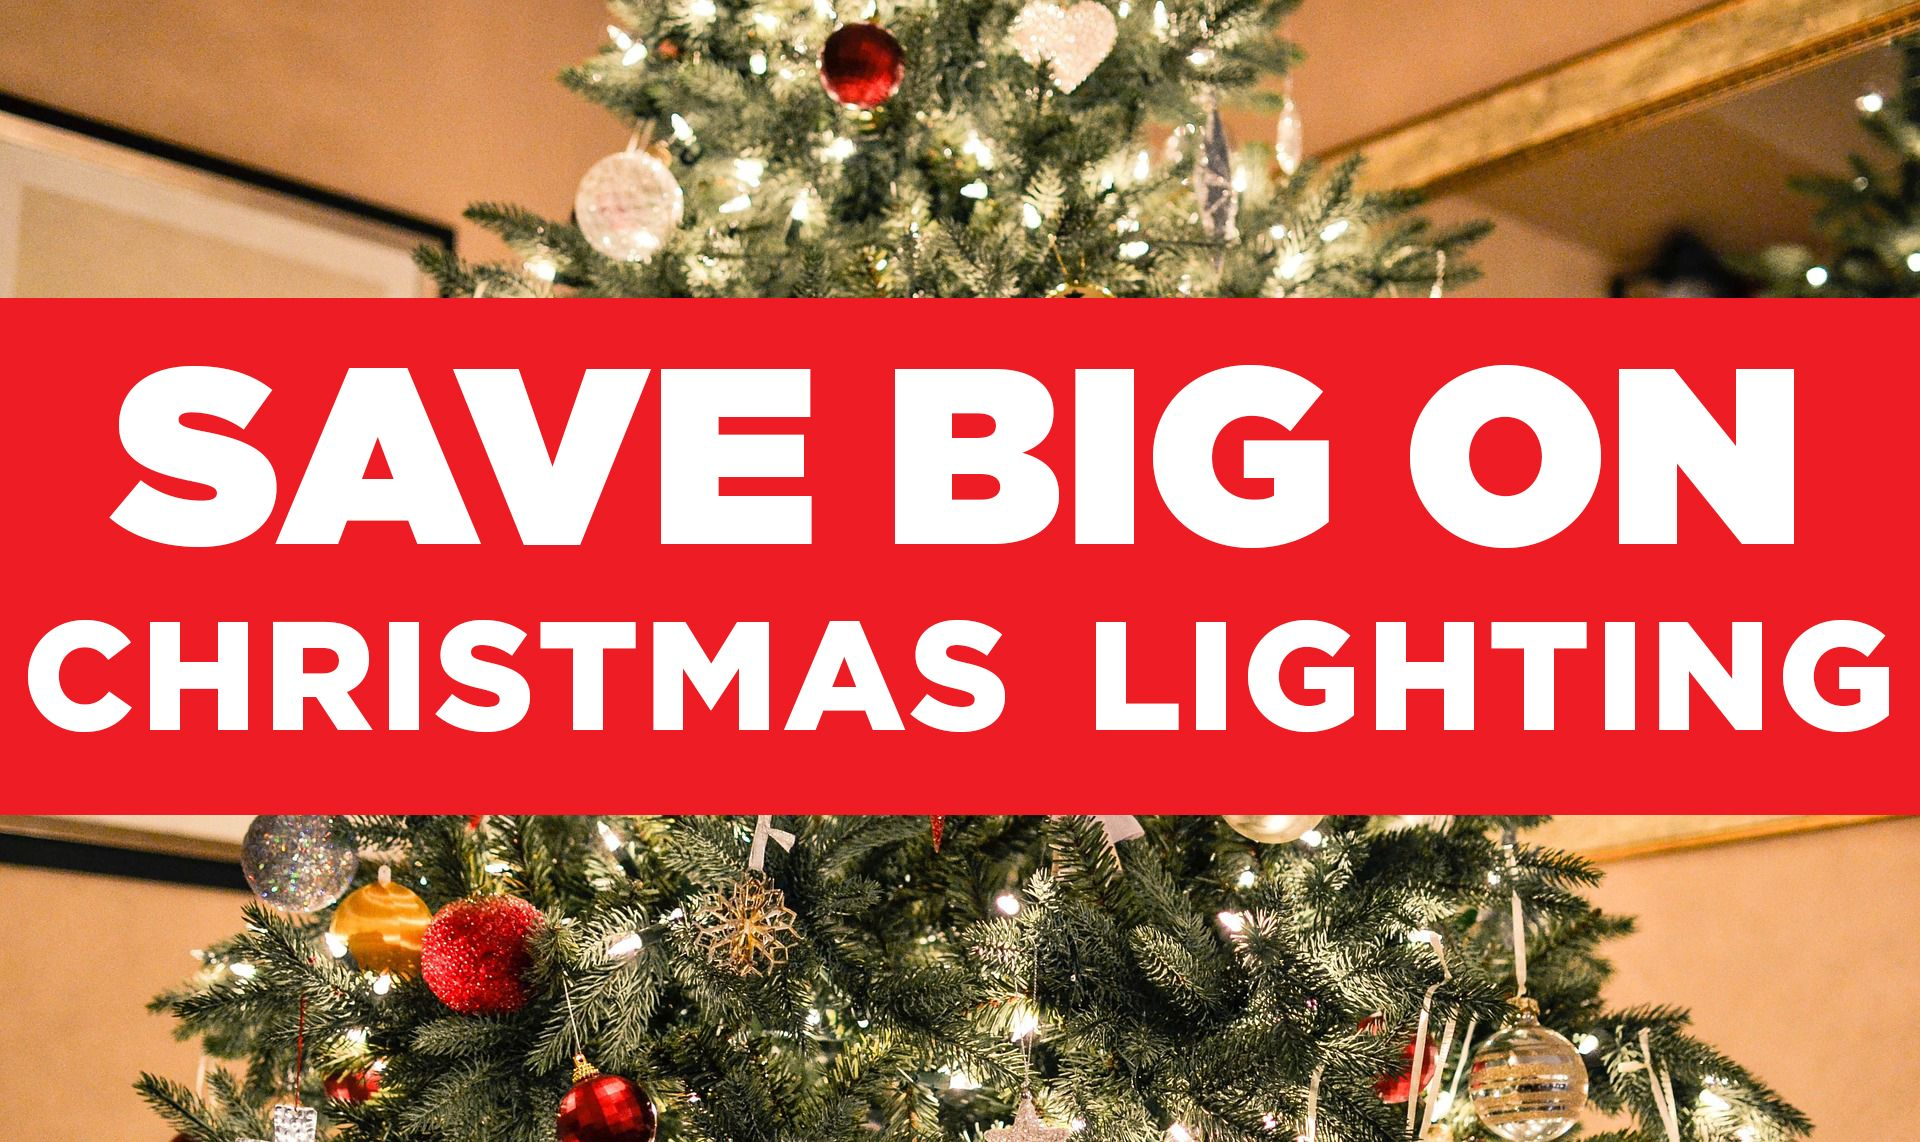 Get The Lights You Need For A Next Level Christmas At 1000bulbs Com Christmas Lights Christmas Lighting Christmas